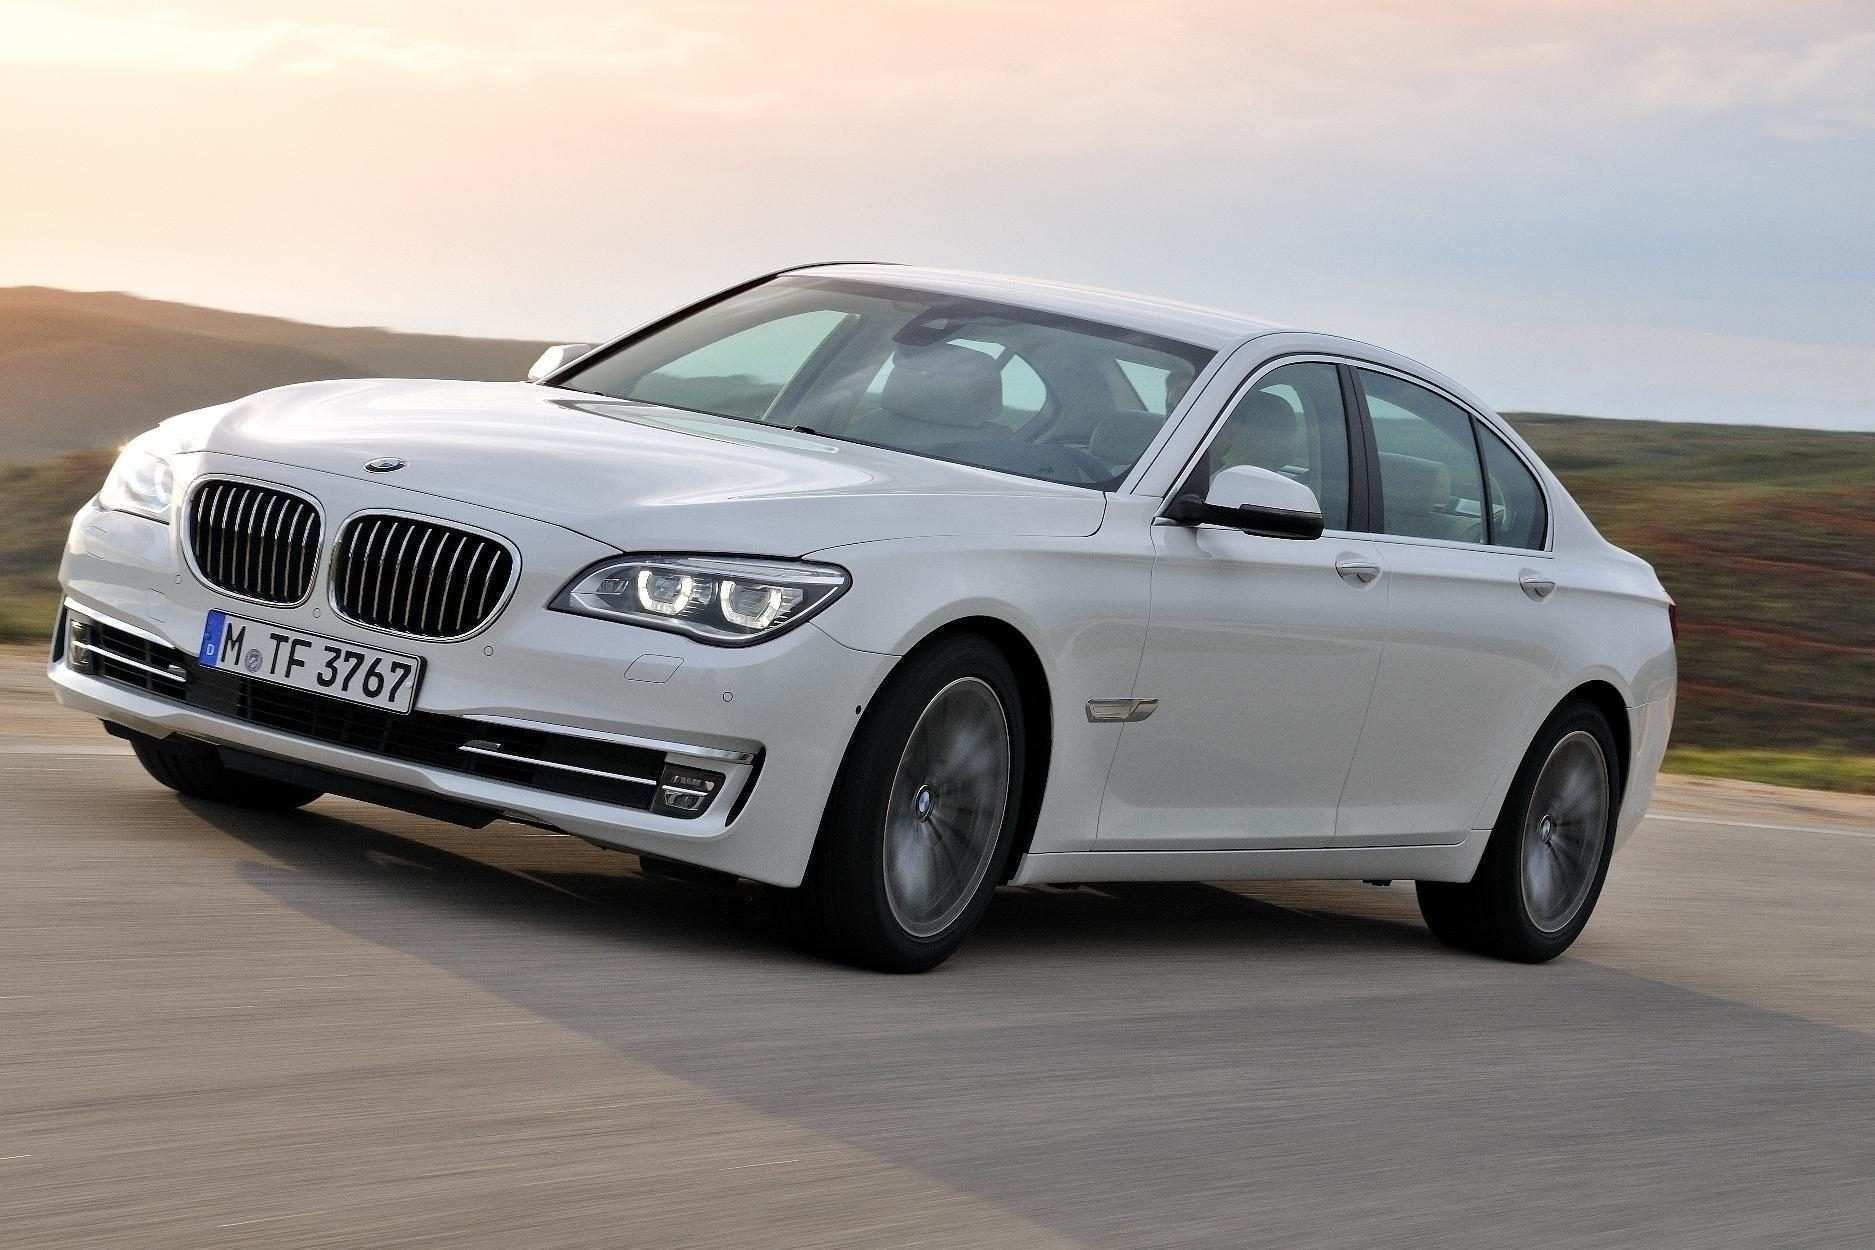 60 A 2019 BMW 7 Series Perfection New Pictures